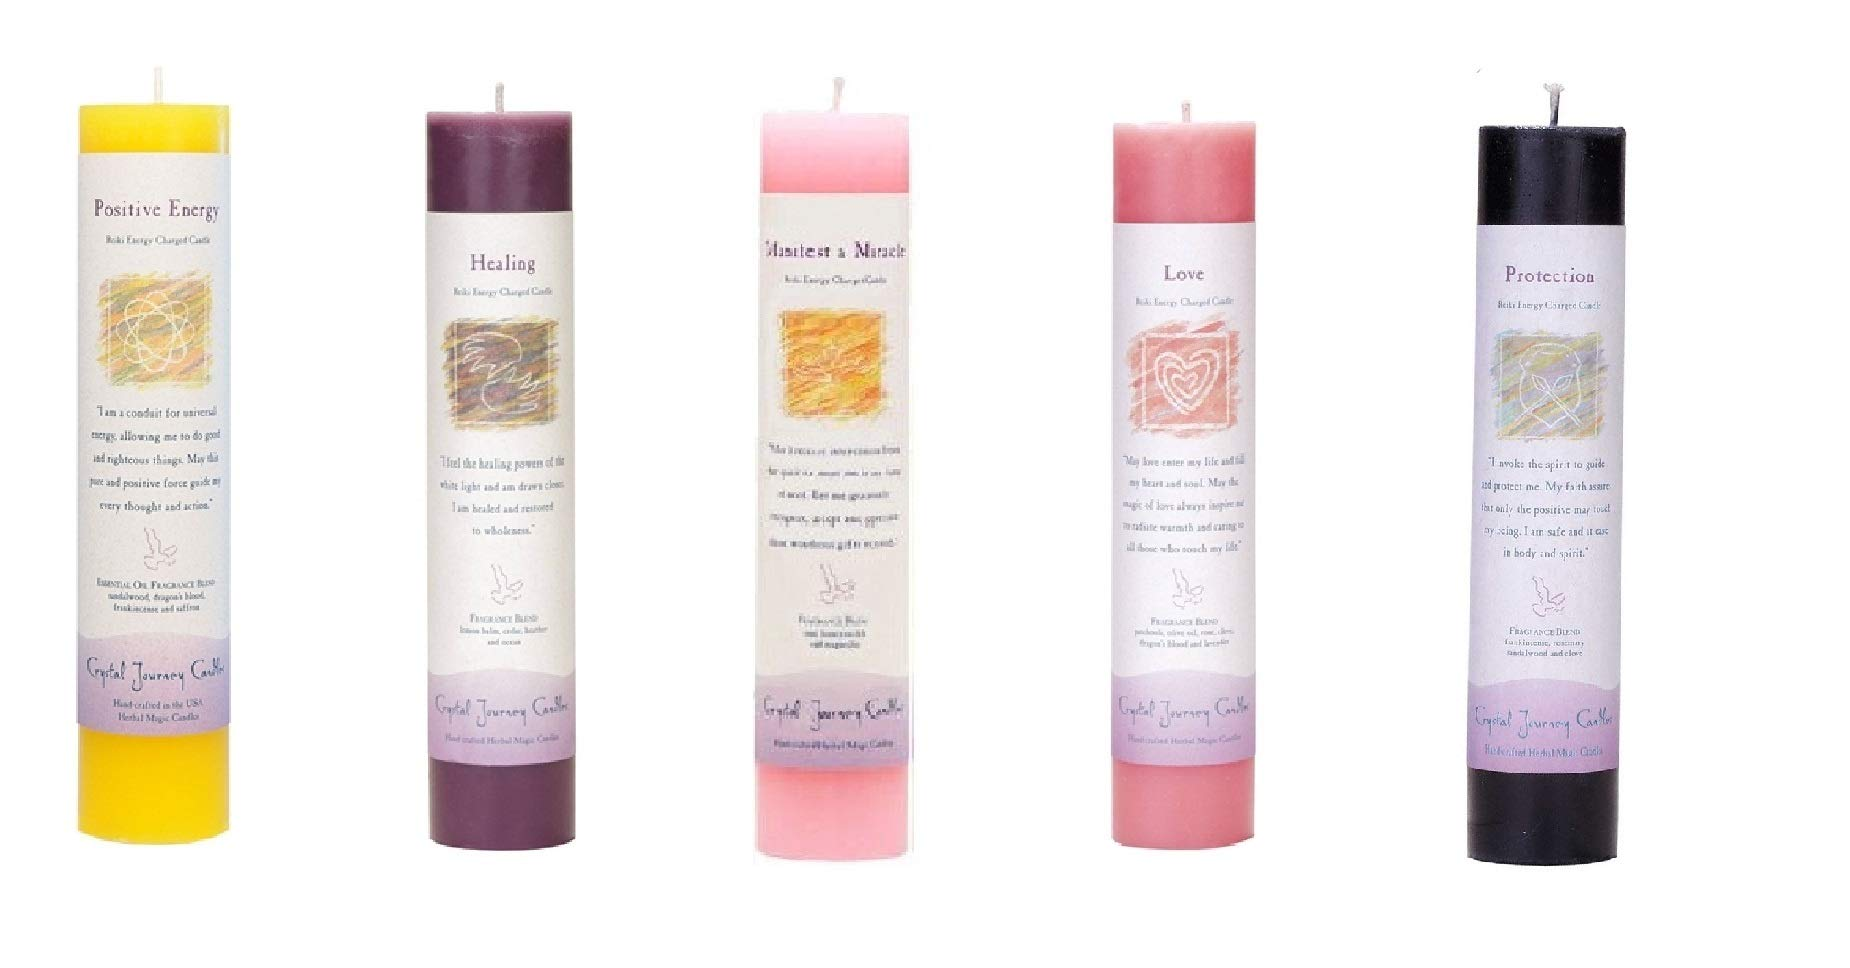 Crystal Journey Reiki Charged Herbal Magic Pillar Candle with Inspirational Labels - 5 Pack (Manifest a Miracle, Healing, Positive Energy, Love, Protection), Each 7''x1.5'' Handcrafted, Lead-Free by Crystal Journey